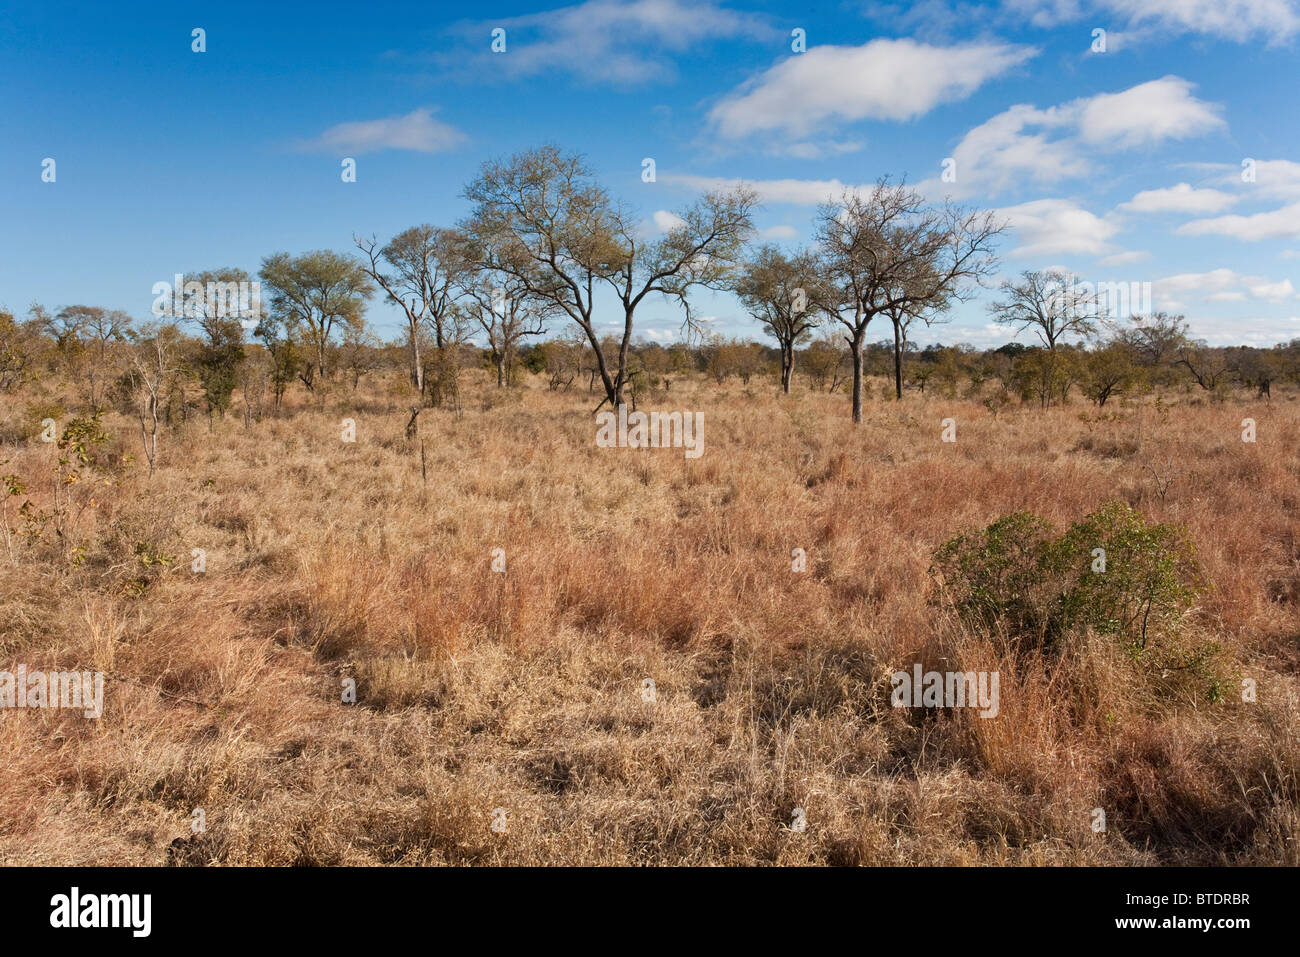 Scenic view of an Acacia nigrescens savanna during the dry season - Stock Image